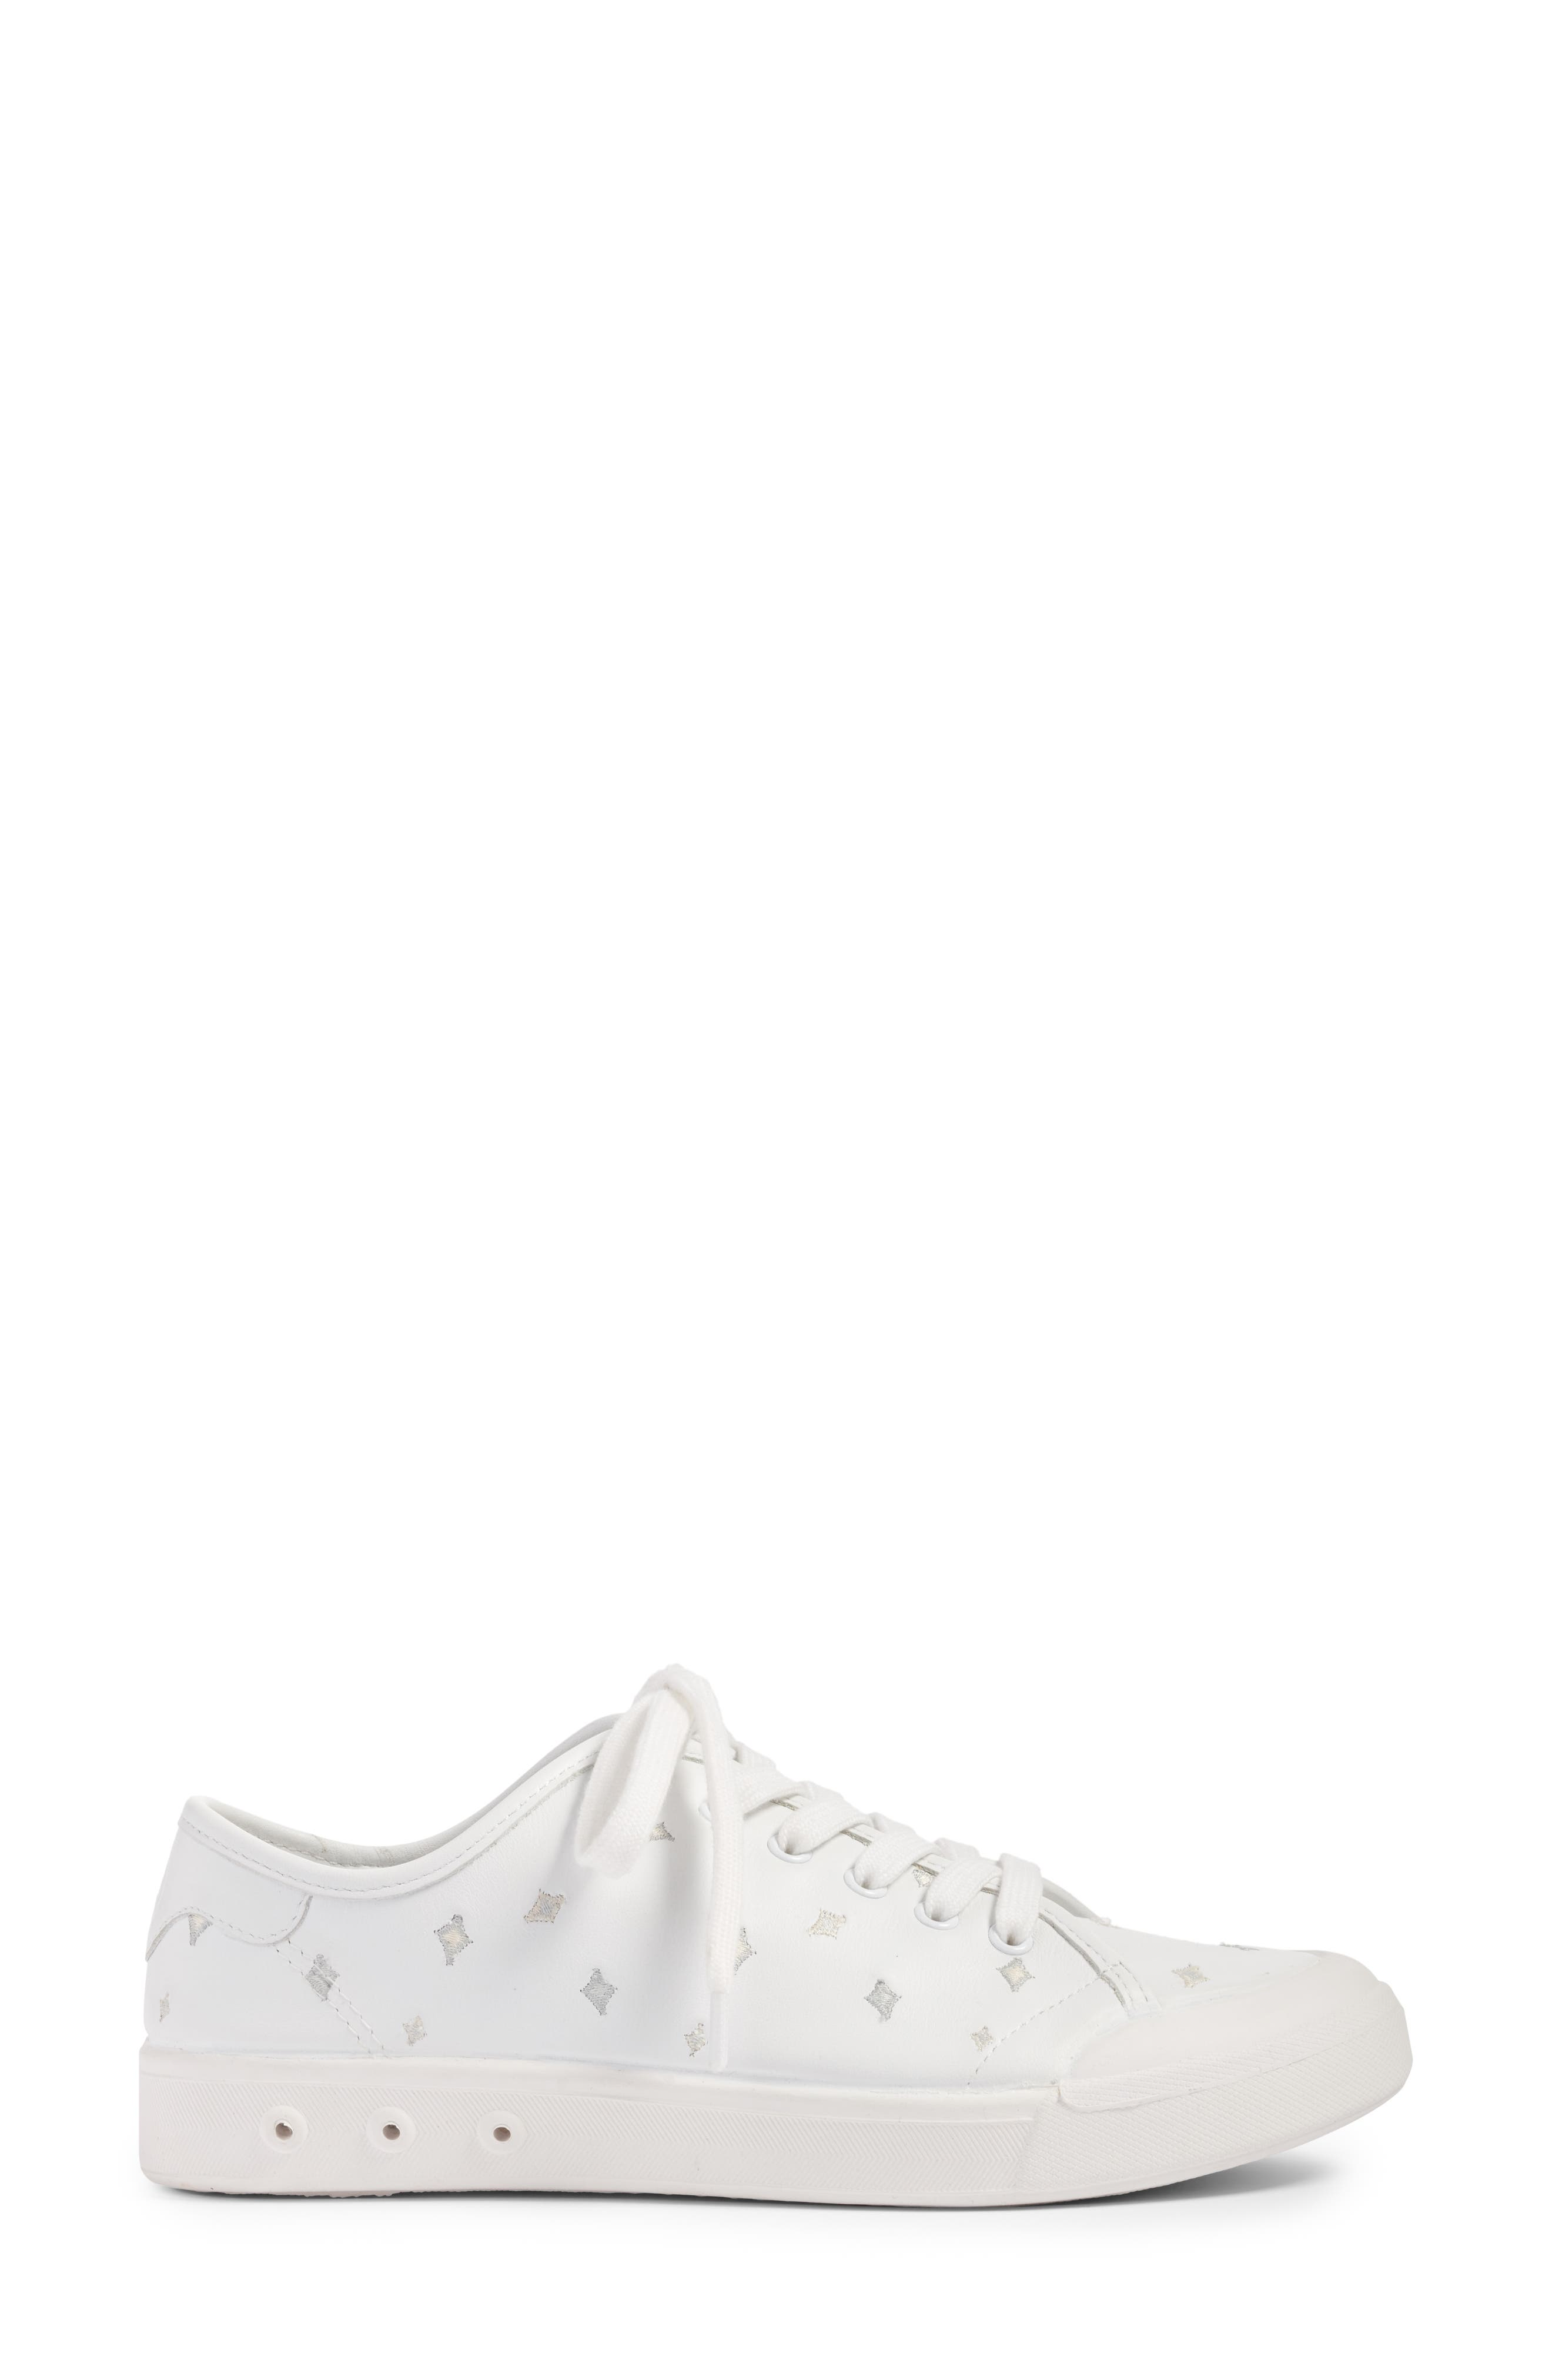 Embroidered Standard Issue Sneaker,                             Alternate thumbnail 3, color,                             129